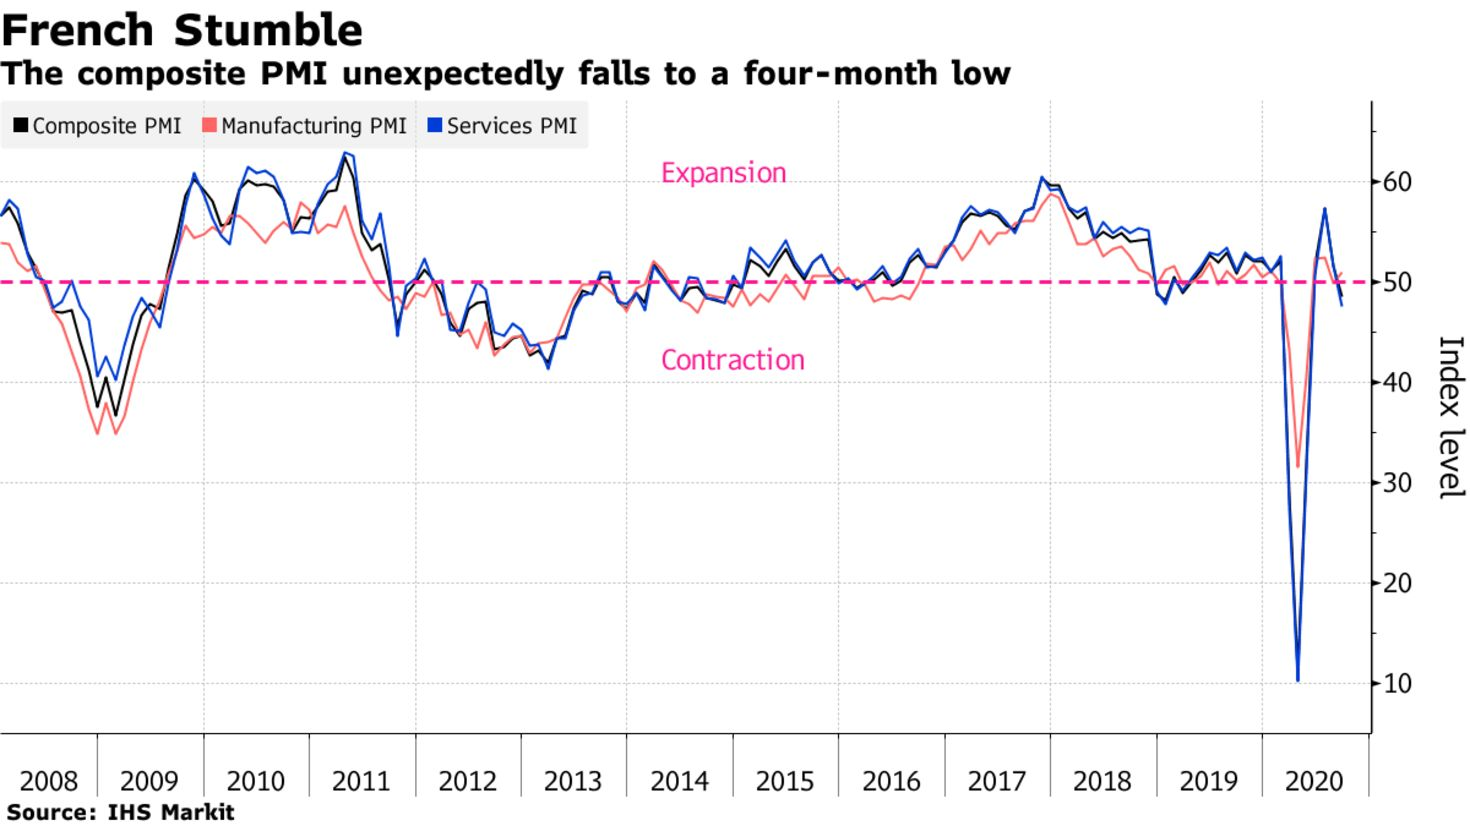 The composite PMI unexpectedly falls to a four-month low